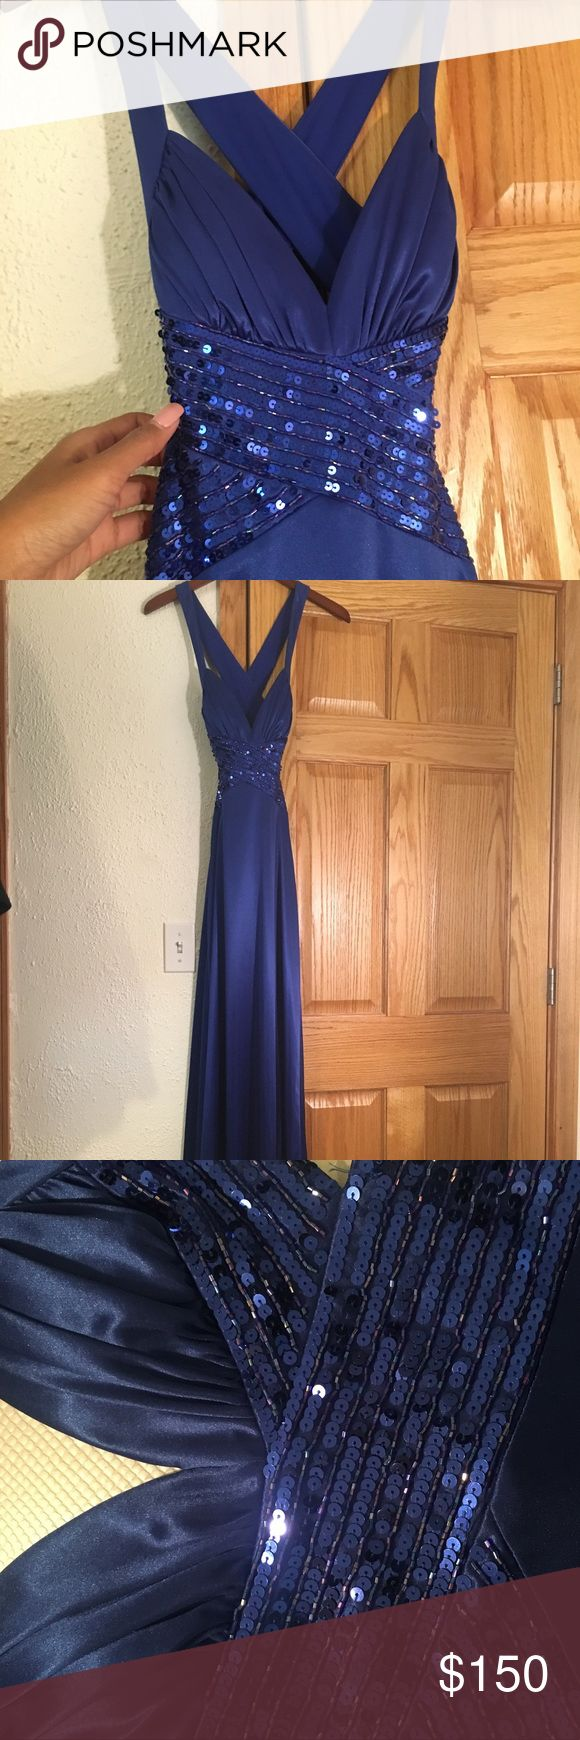 Gorgeous blue open back dress with beading Heart shaped front, x-shaped, peek-a-boo sides, cross in the back. Stunning, body contouring. Brand new. Stored in dust bag. Dresses Prom